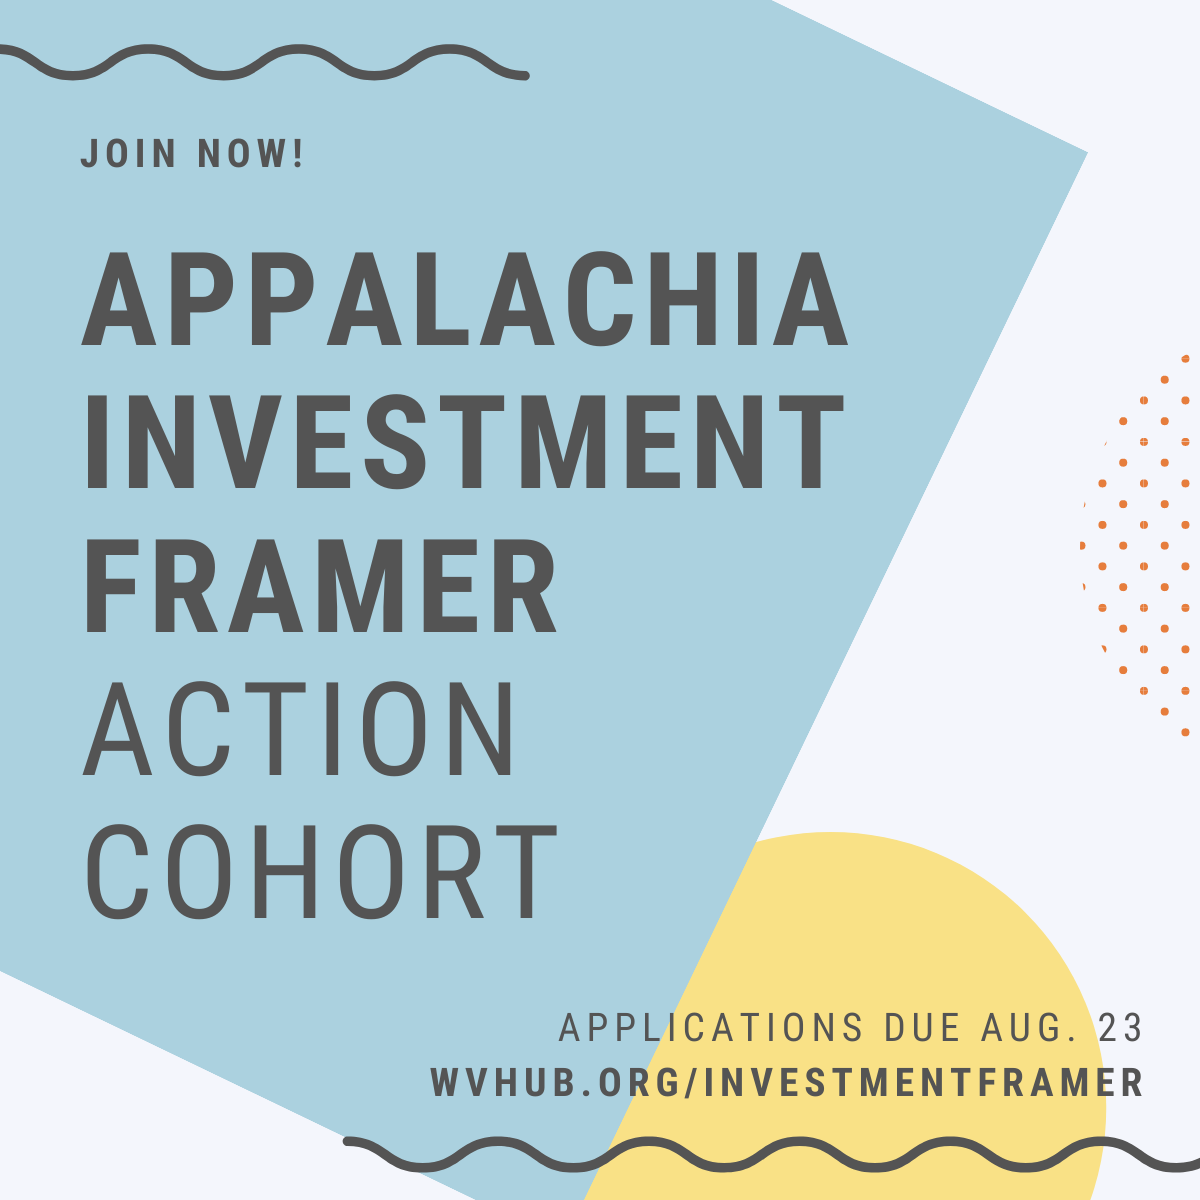 New Leadership Development Opportunity Will Increase Capacity for Investment into Appalachian Communities